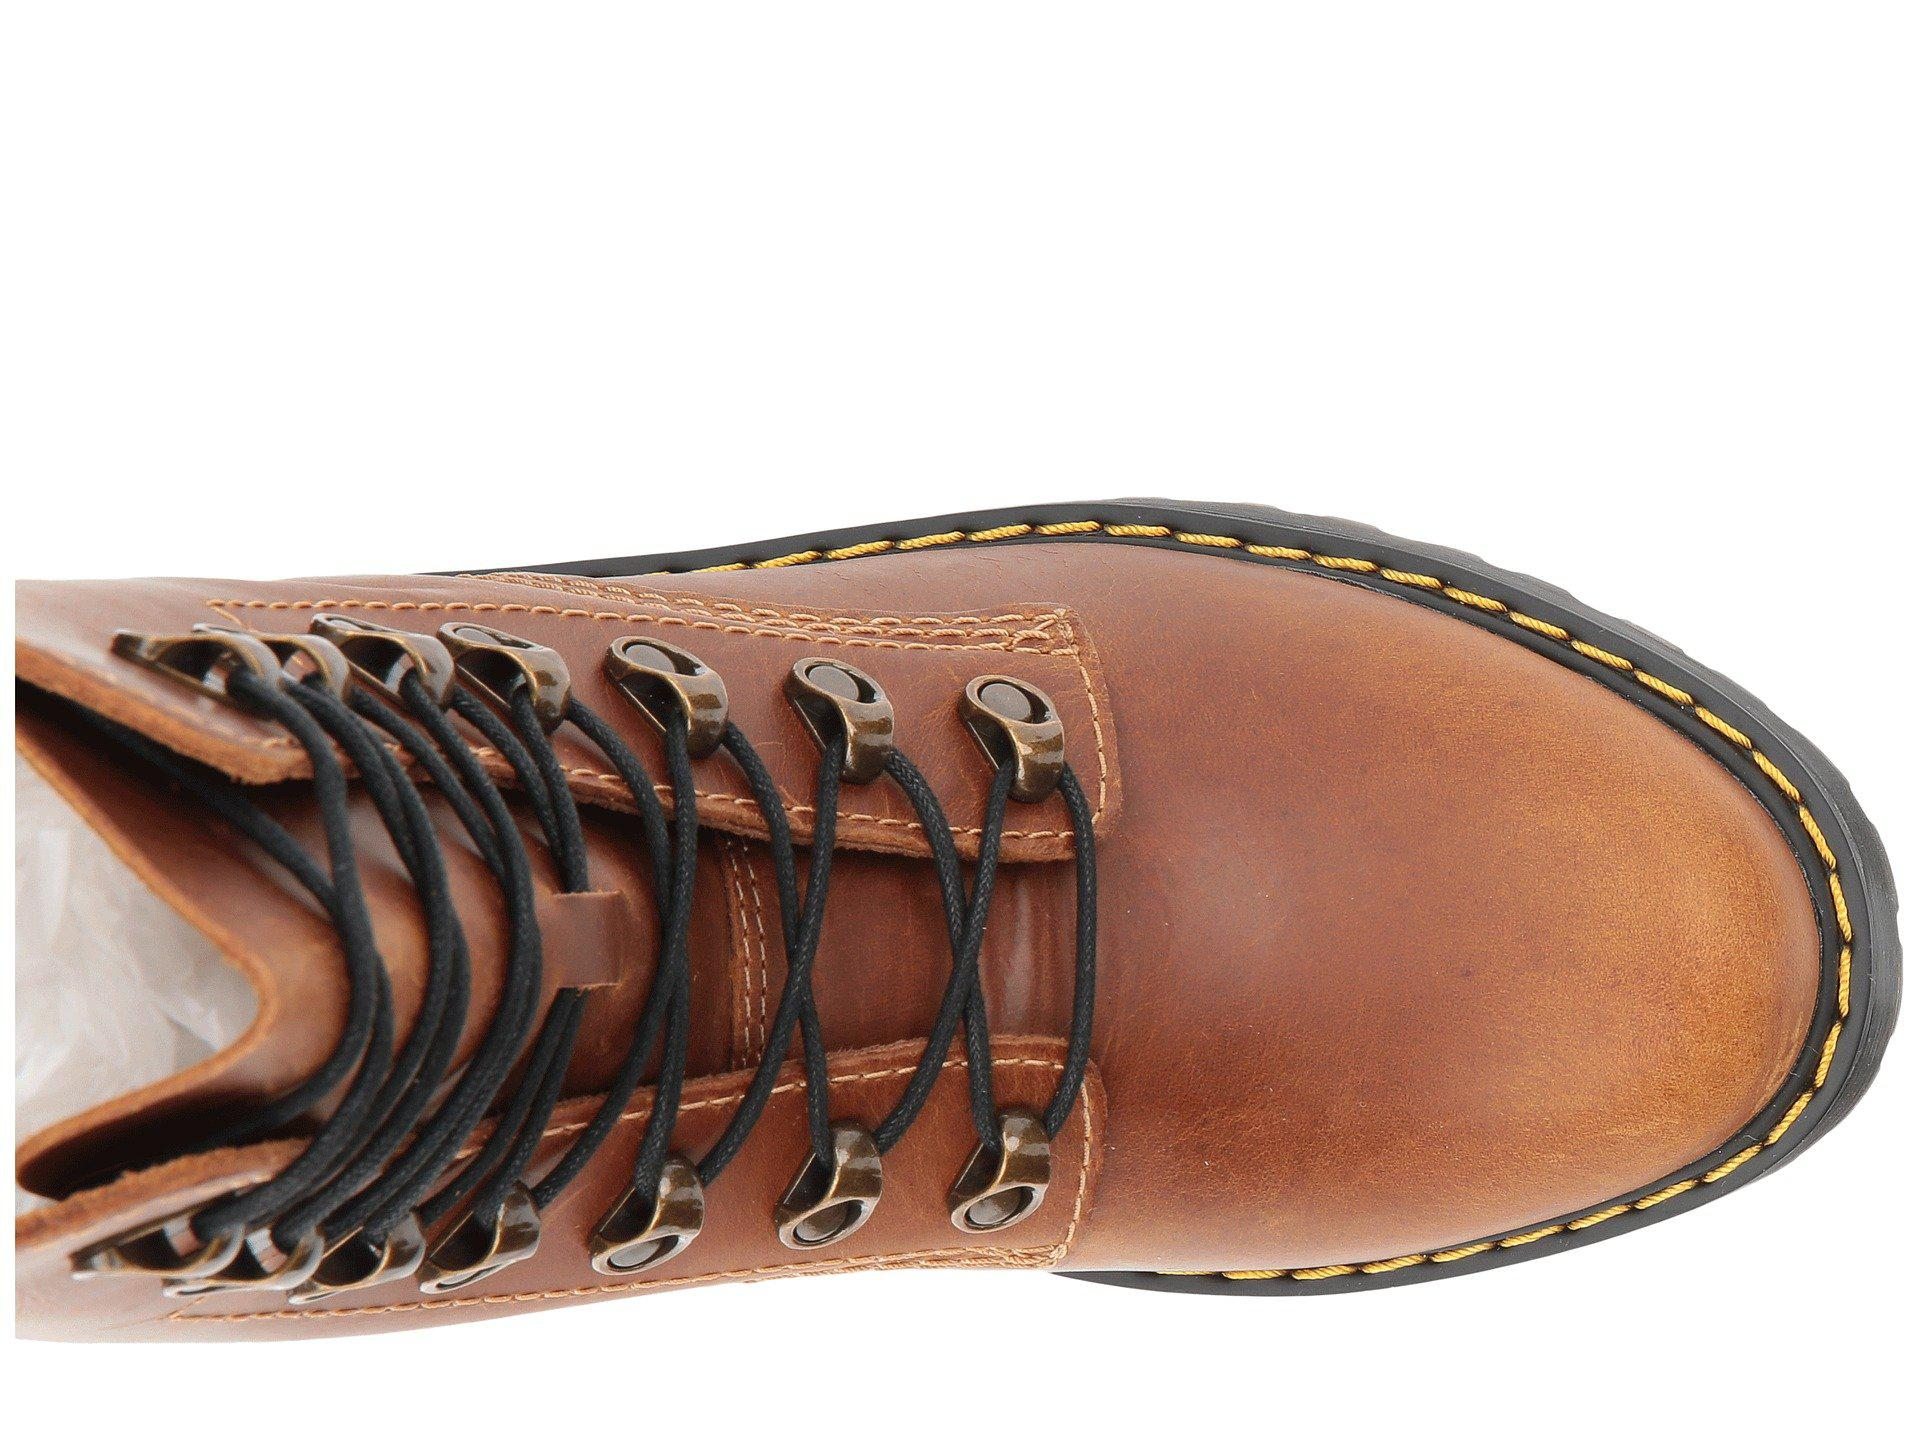 955f81f274 Dr. Martens 1460 Leona Vintage Smooth Boots in Brown - Lyst